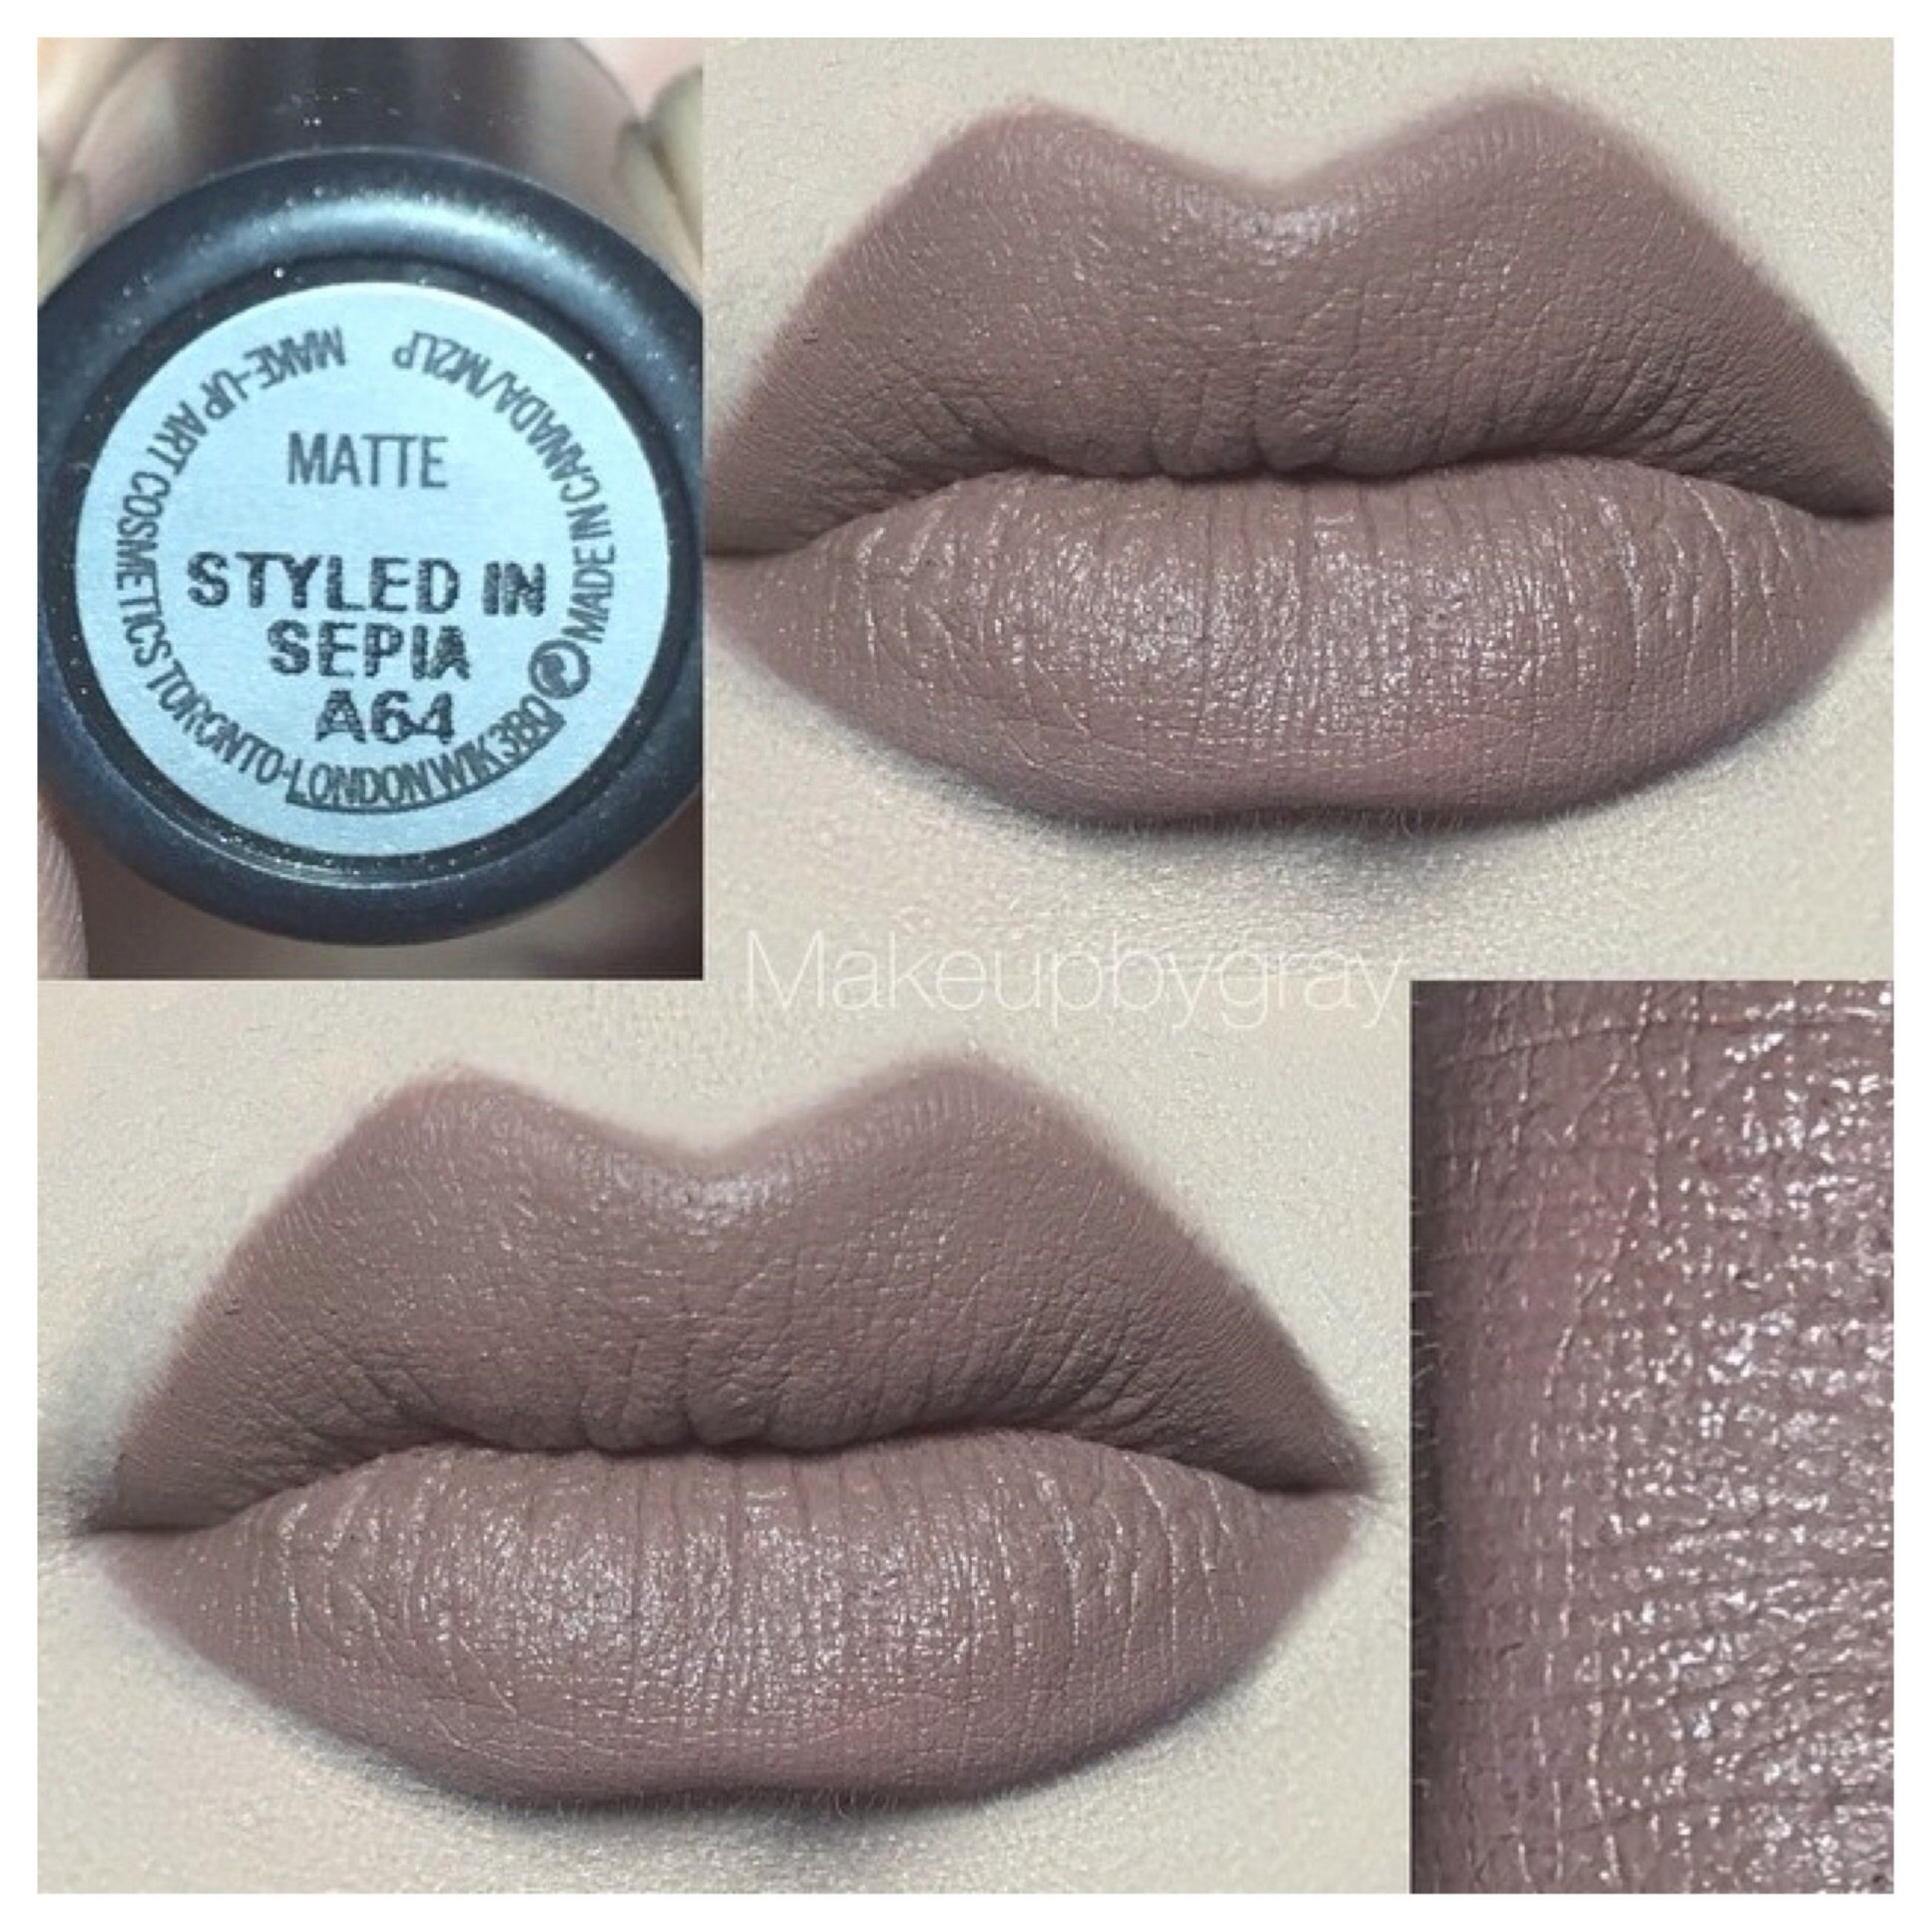 MAC COSMETICS Styled In Sepia Matte. Soft neutral brown ...